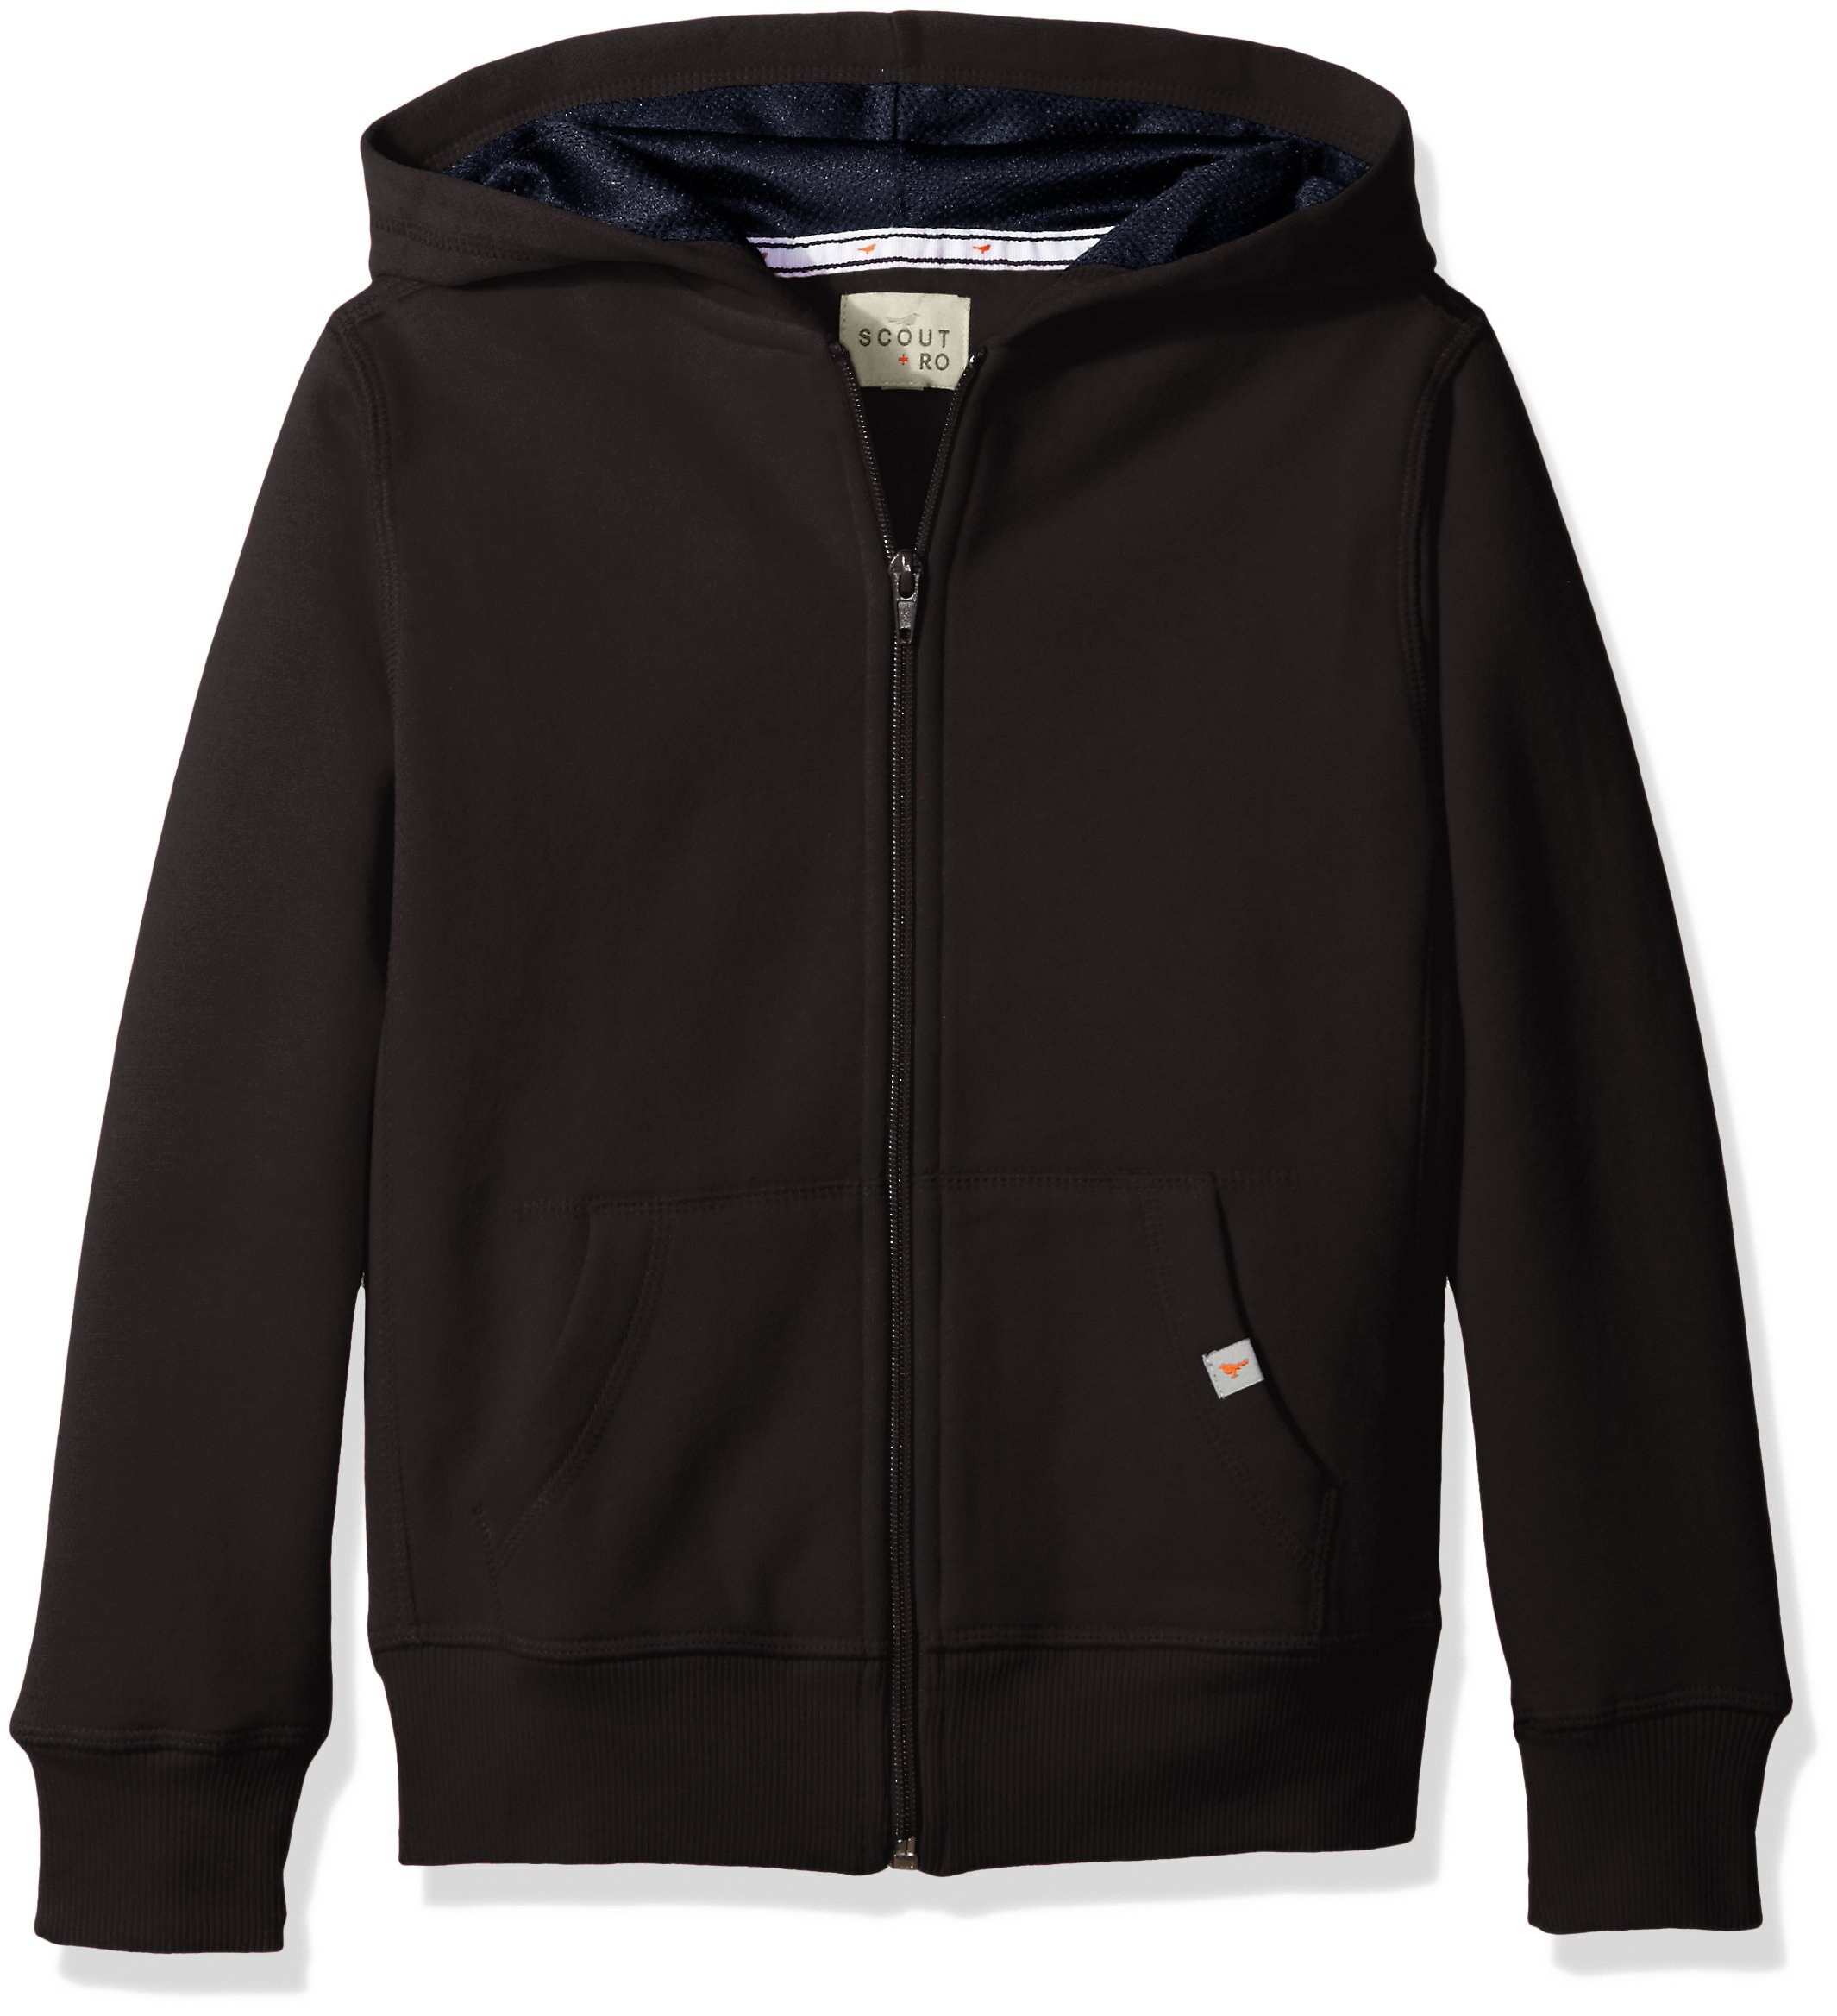 Scout + Ro Little Boys' Basic Fleece Hooded Jacket, Black, 7 by Scout + Ro